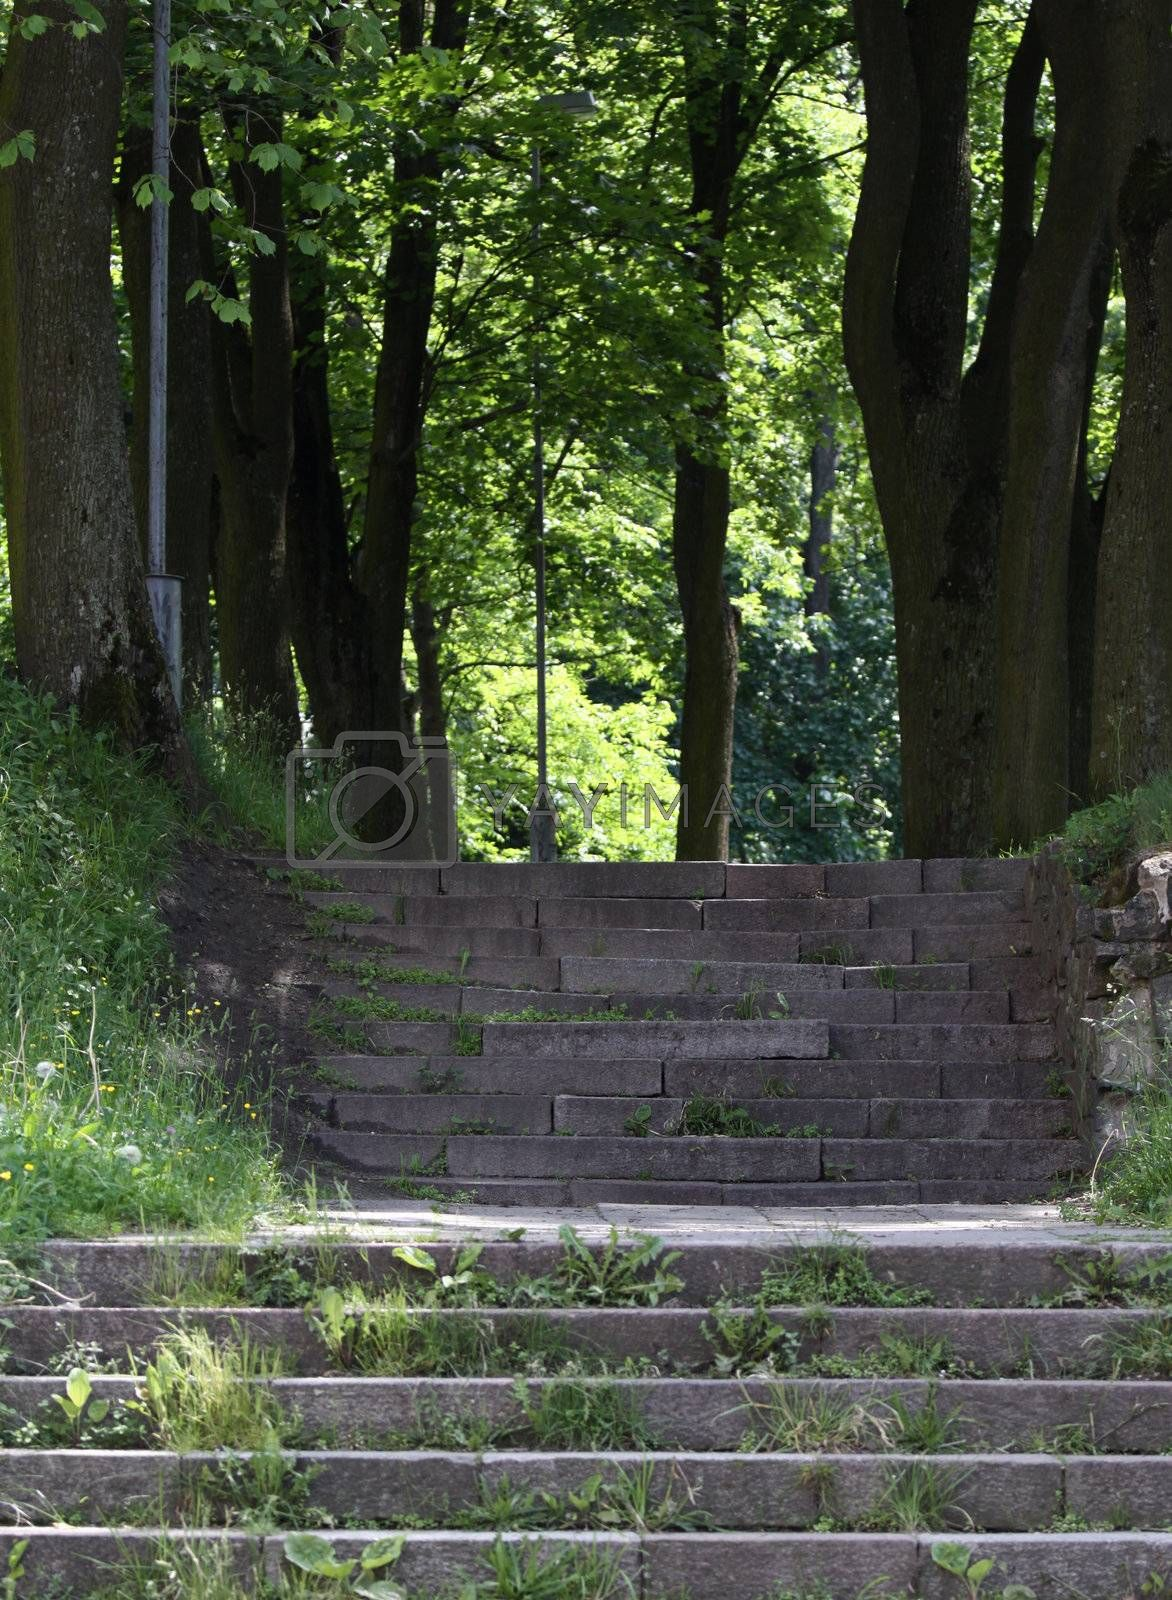 Vertical picture of stone stairs in the park